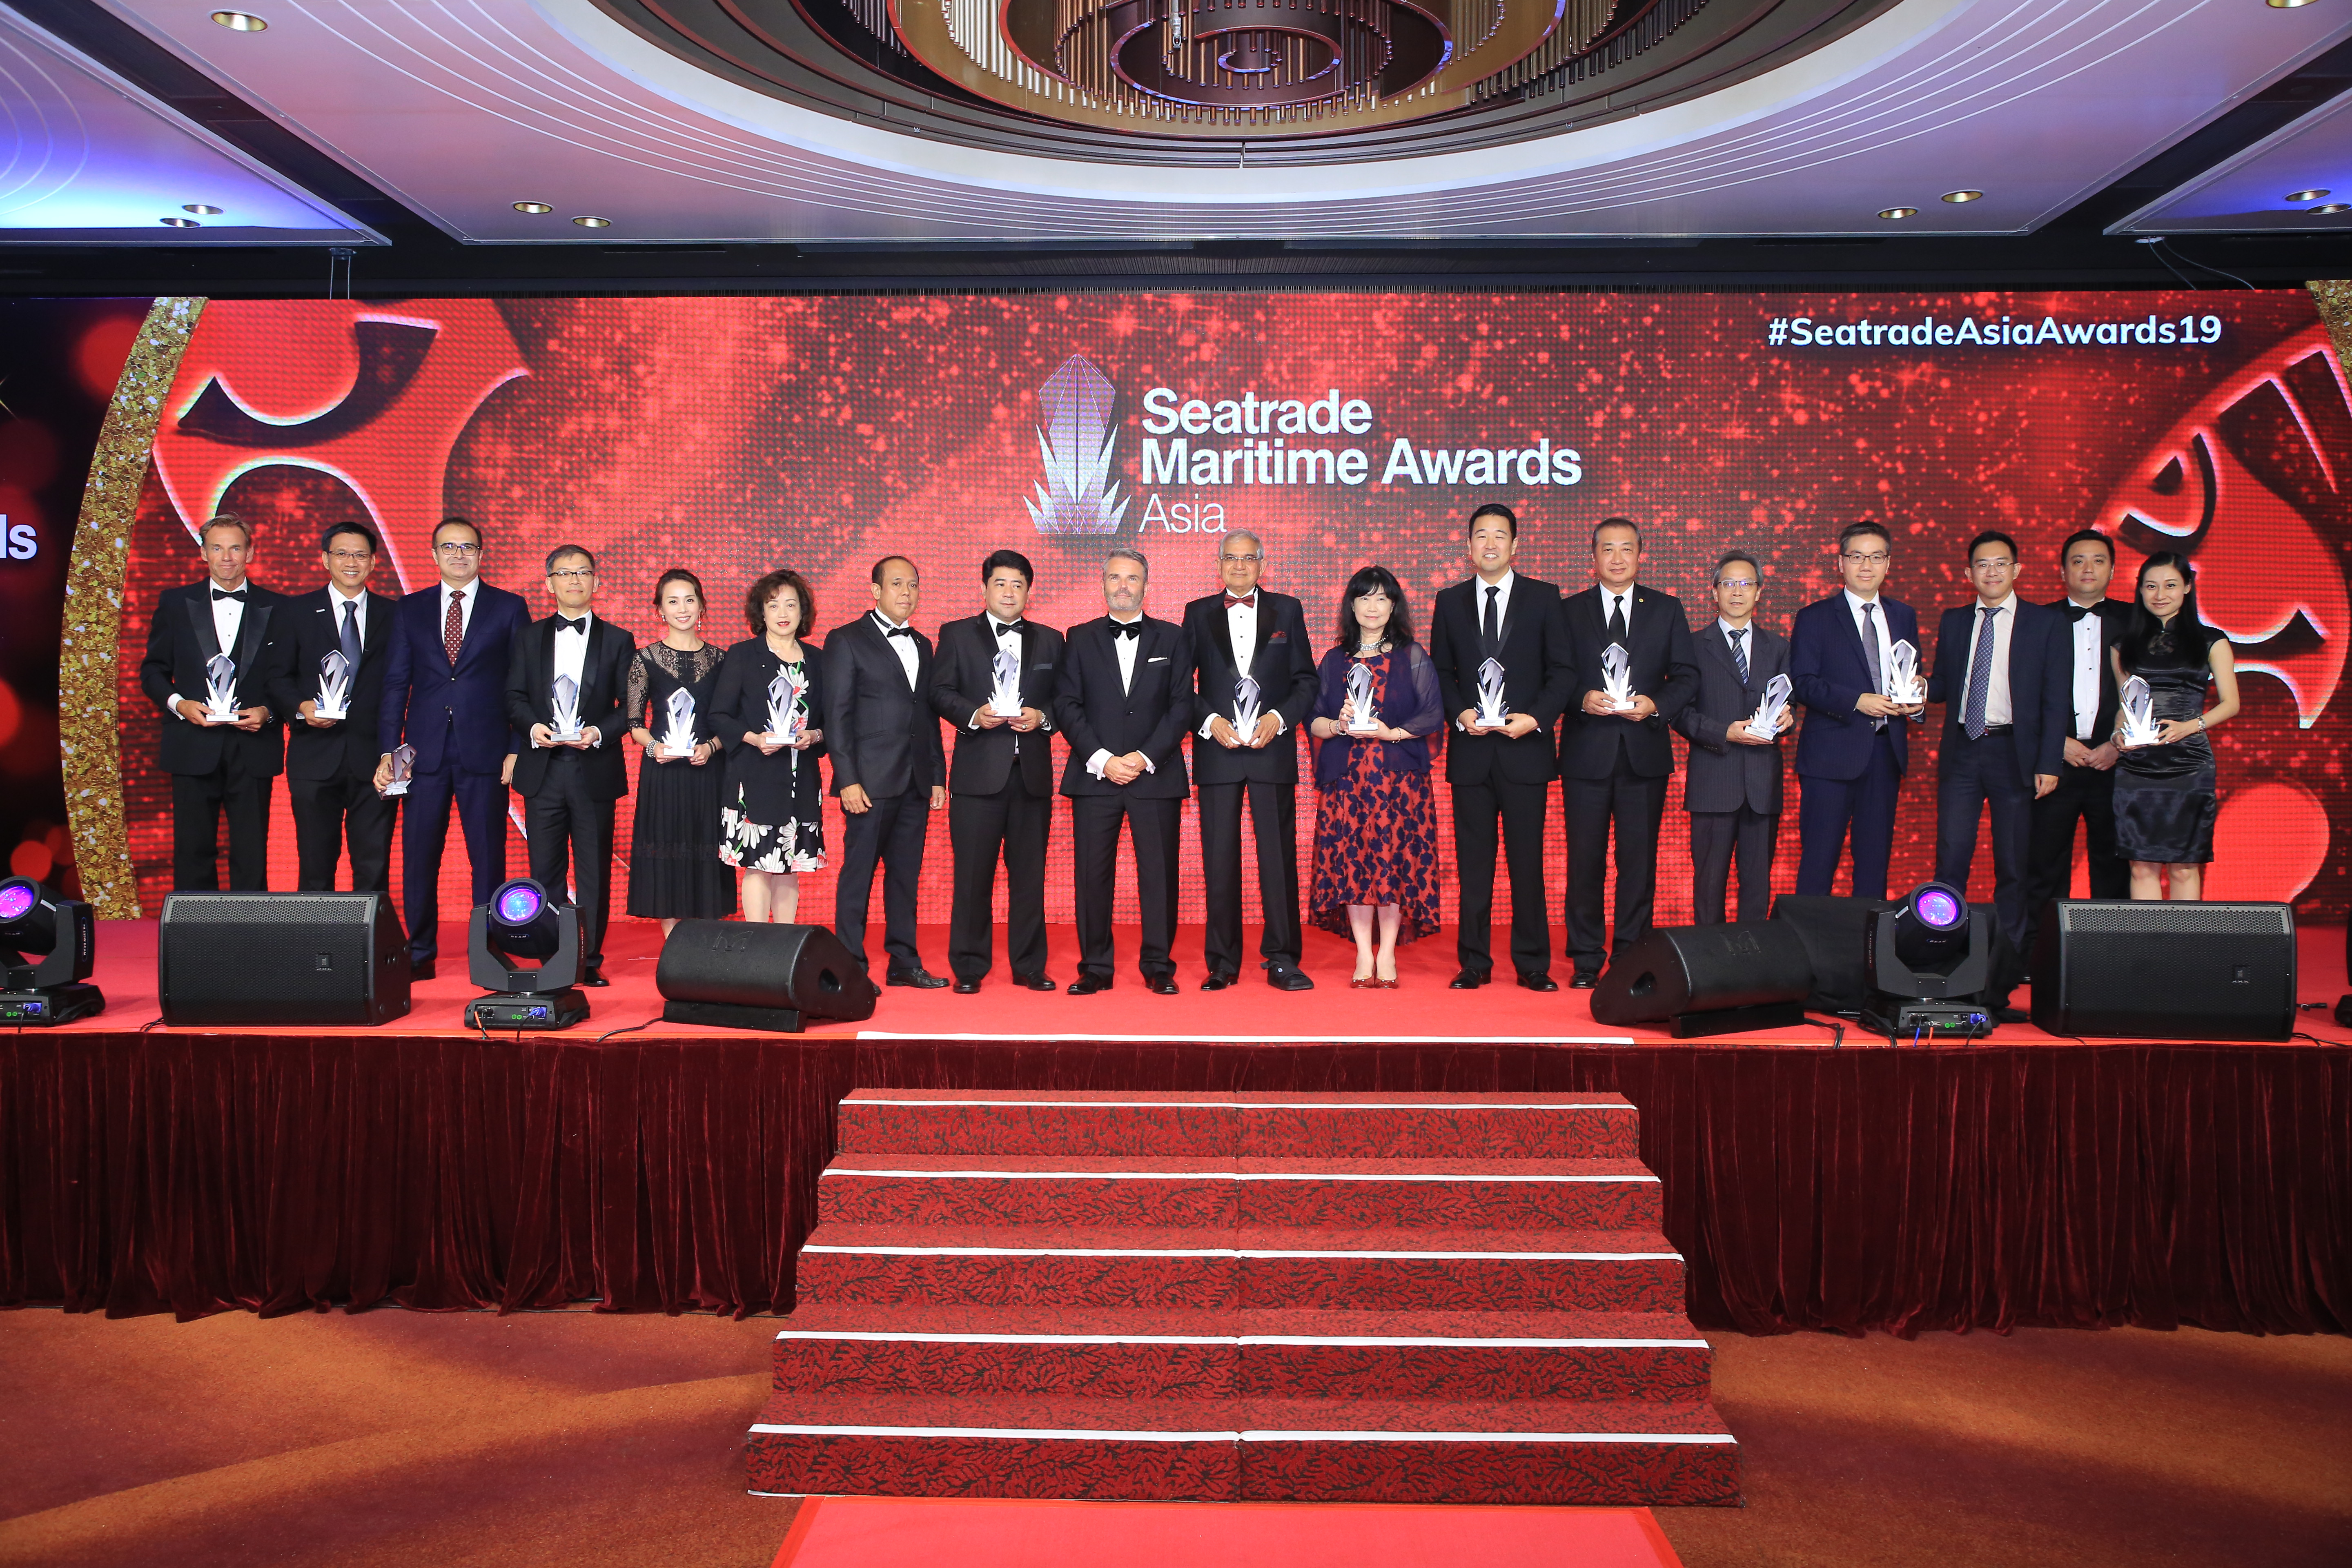 [Group] Seatrade Maritime Awards 2019